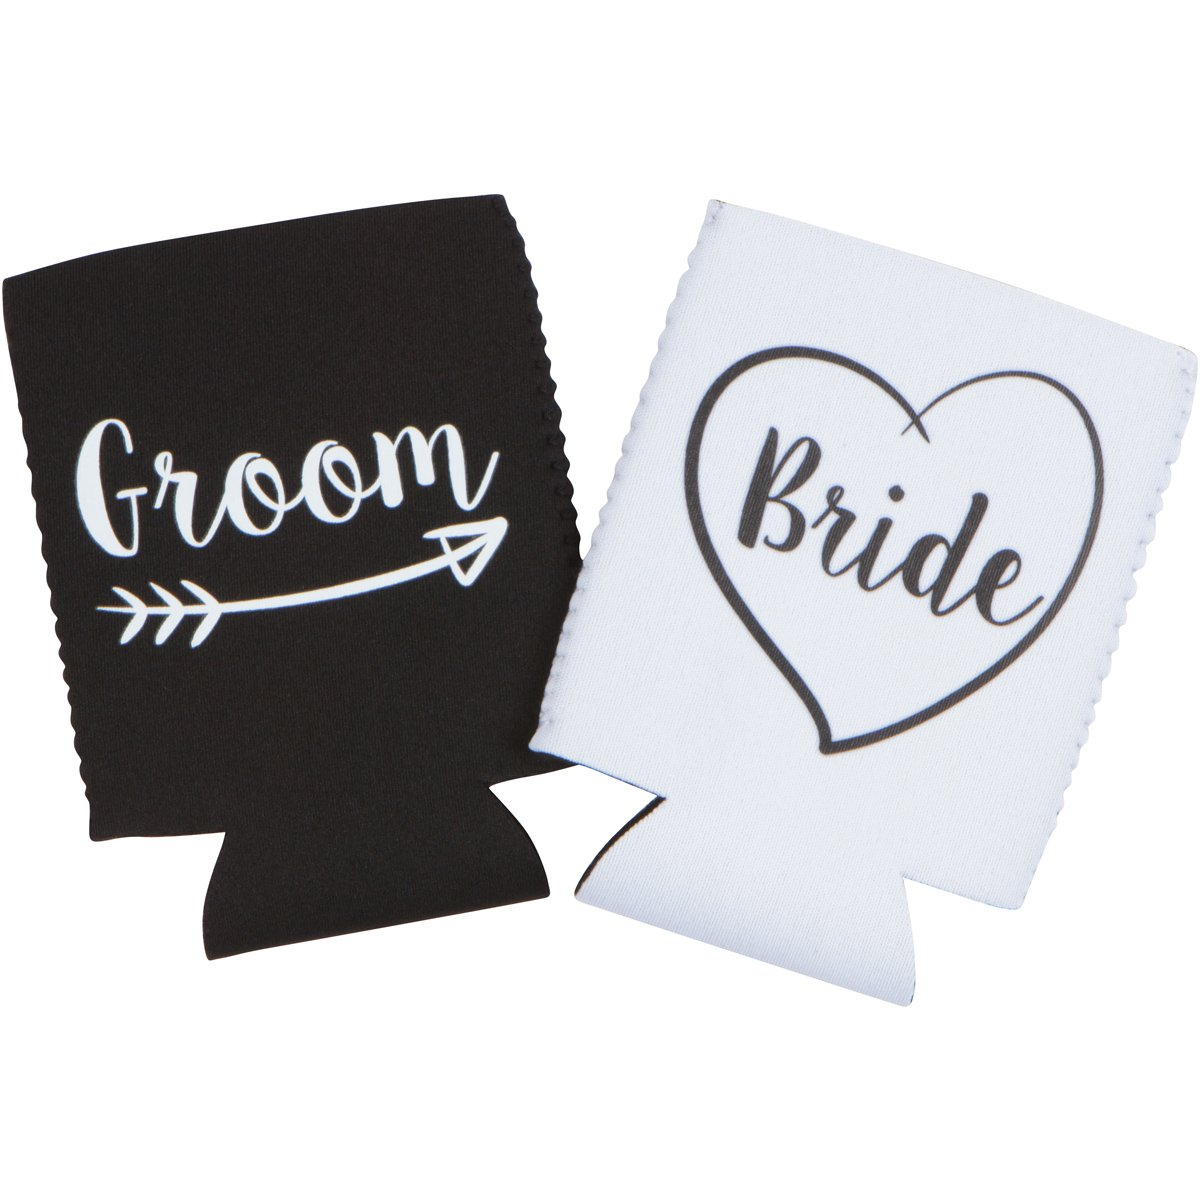 Cute Wedding Gifts - Bride and Groom Novelty Can Cooler Combo - Engagement Gift for Couples by The Plympton Company (Image #2)